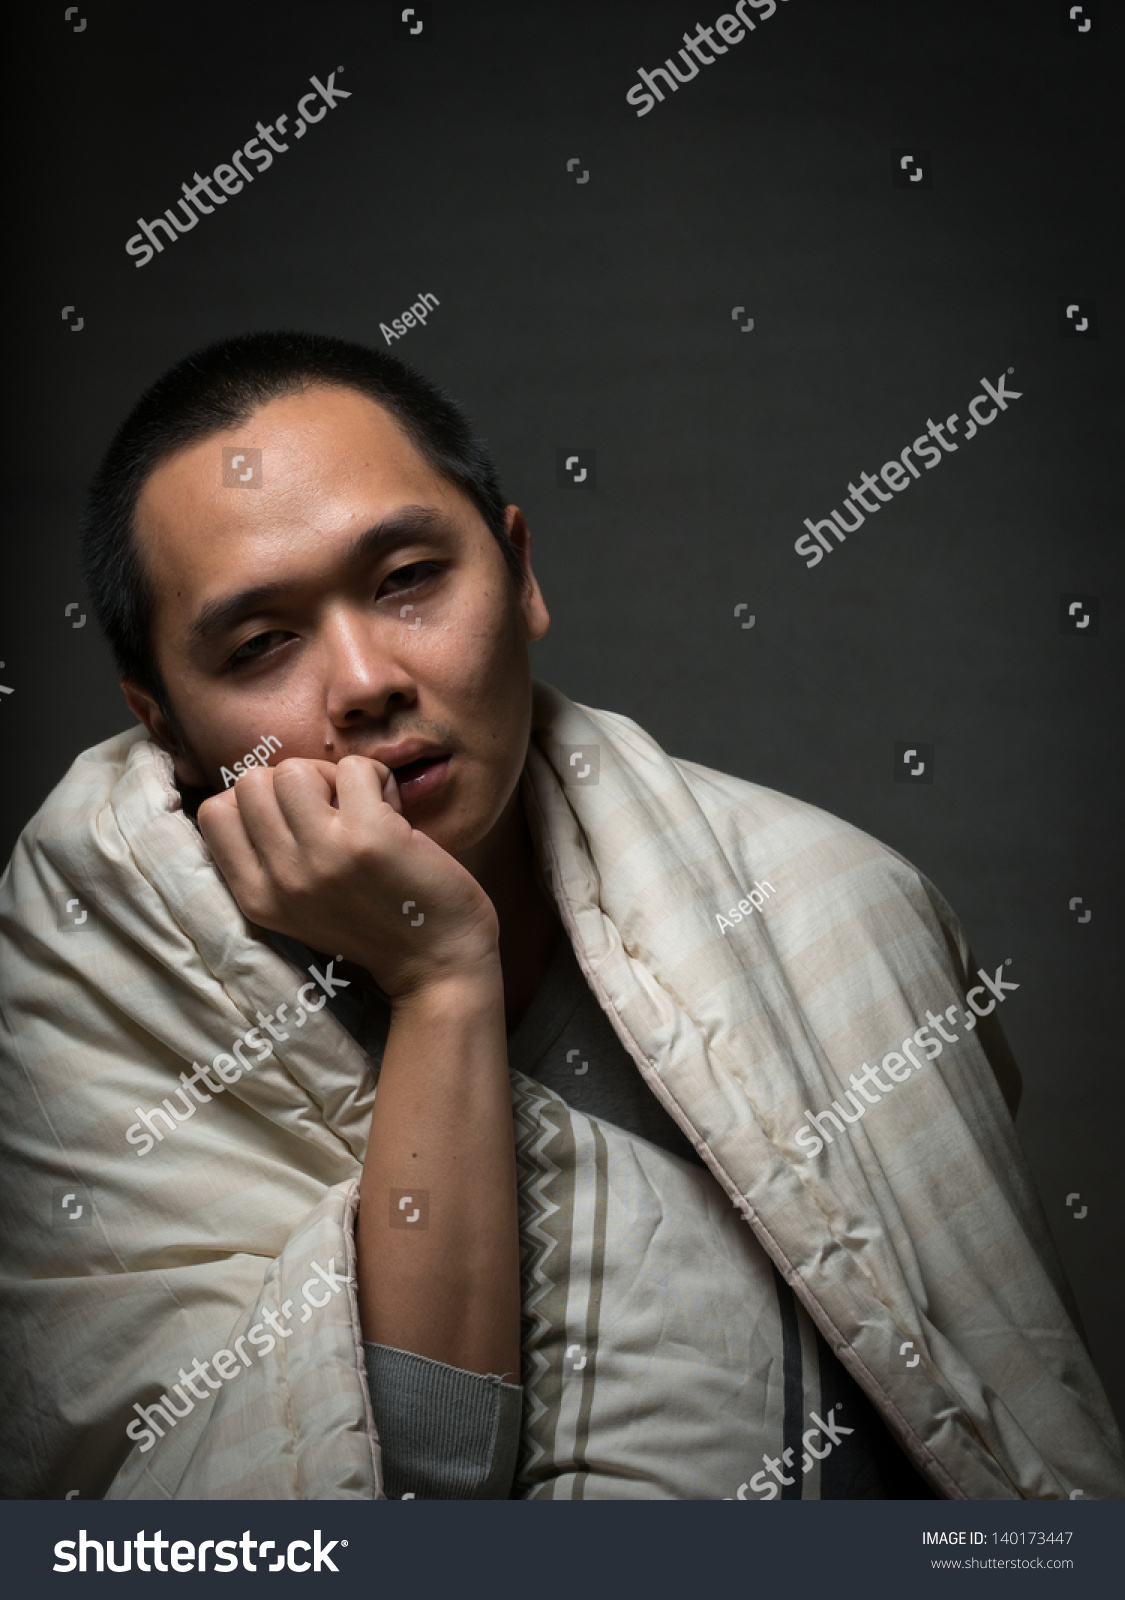 Bored Sleepy Tired Person Waiting Trying To Stay Awake Stock Photo 140173447 : Shutterstock